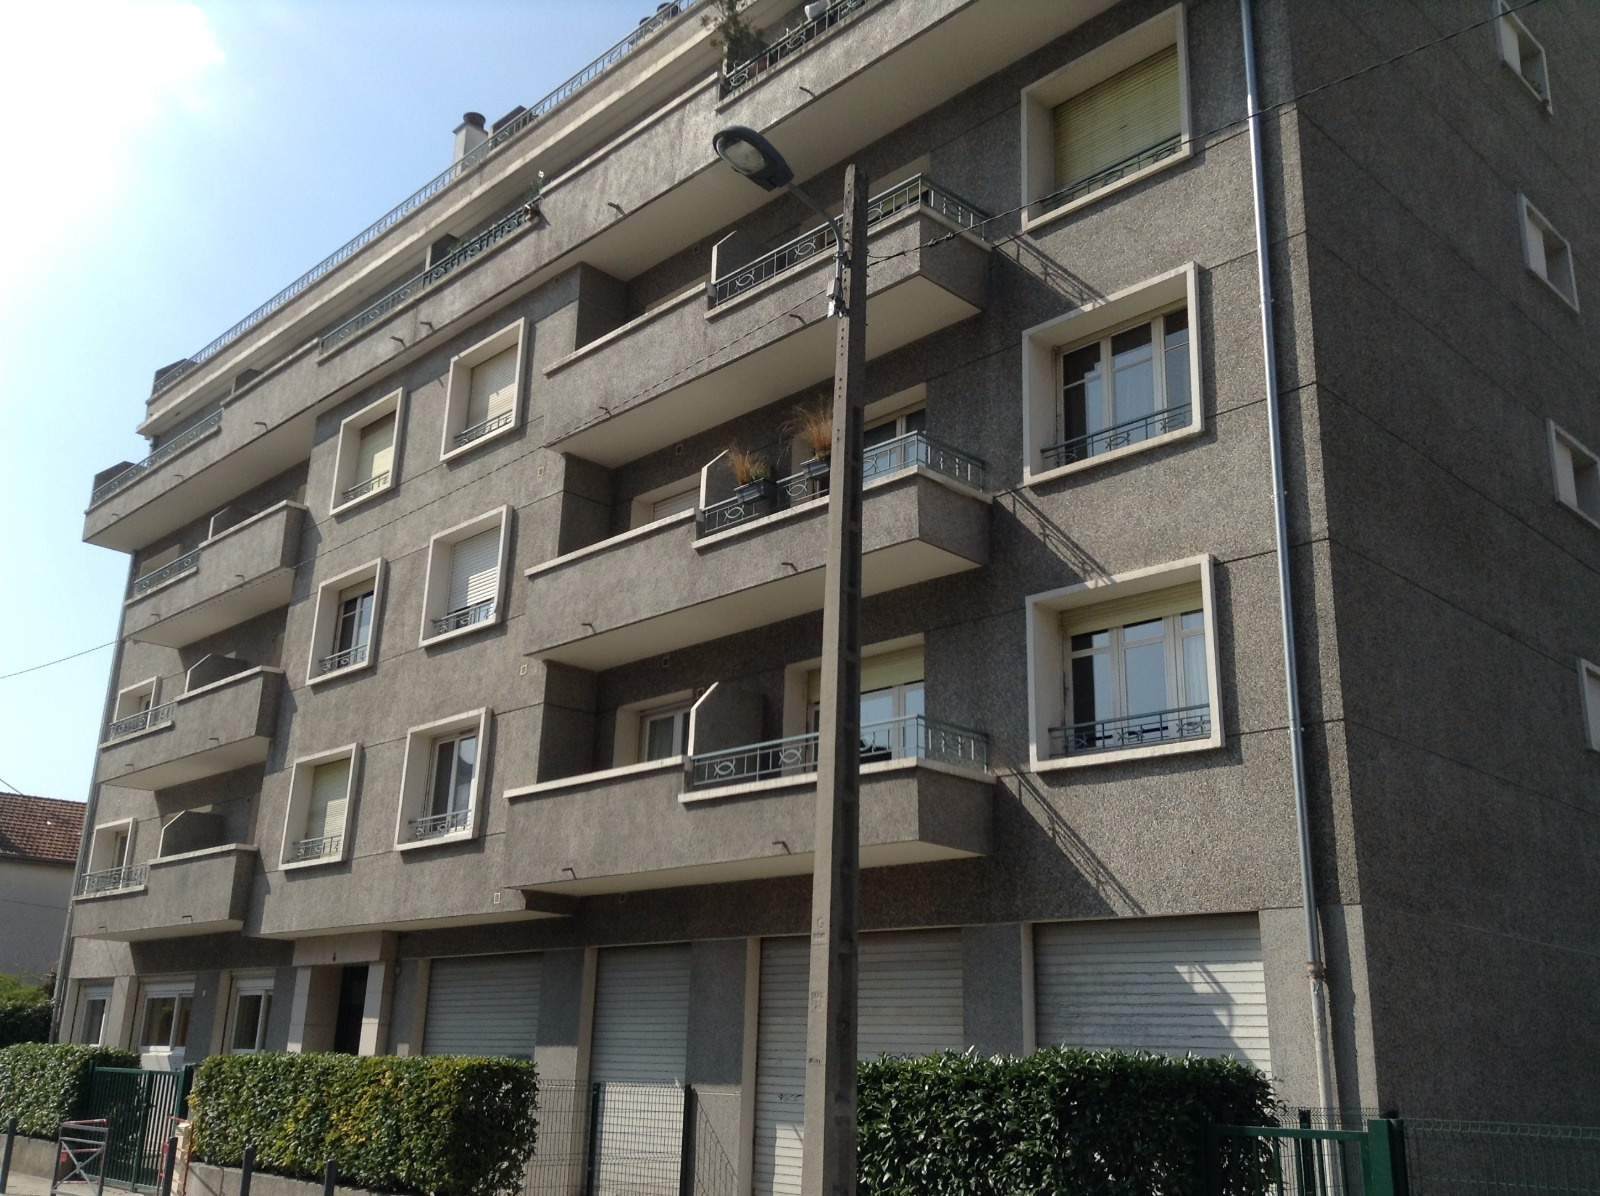 Immobili re victor hugo l 39 immobilier grenoble et for Ca location immobilier